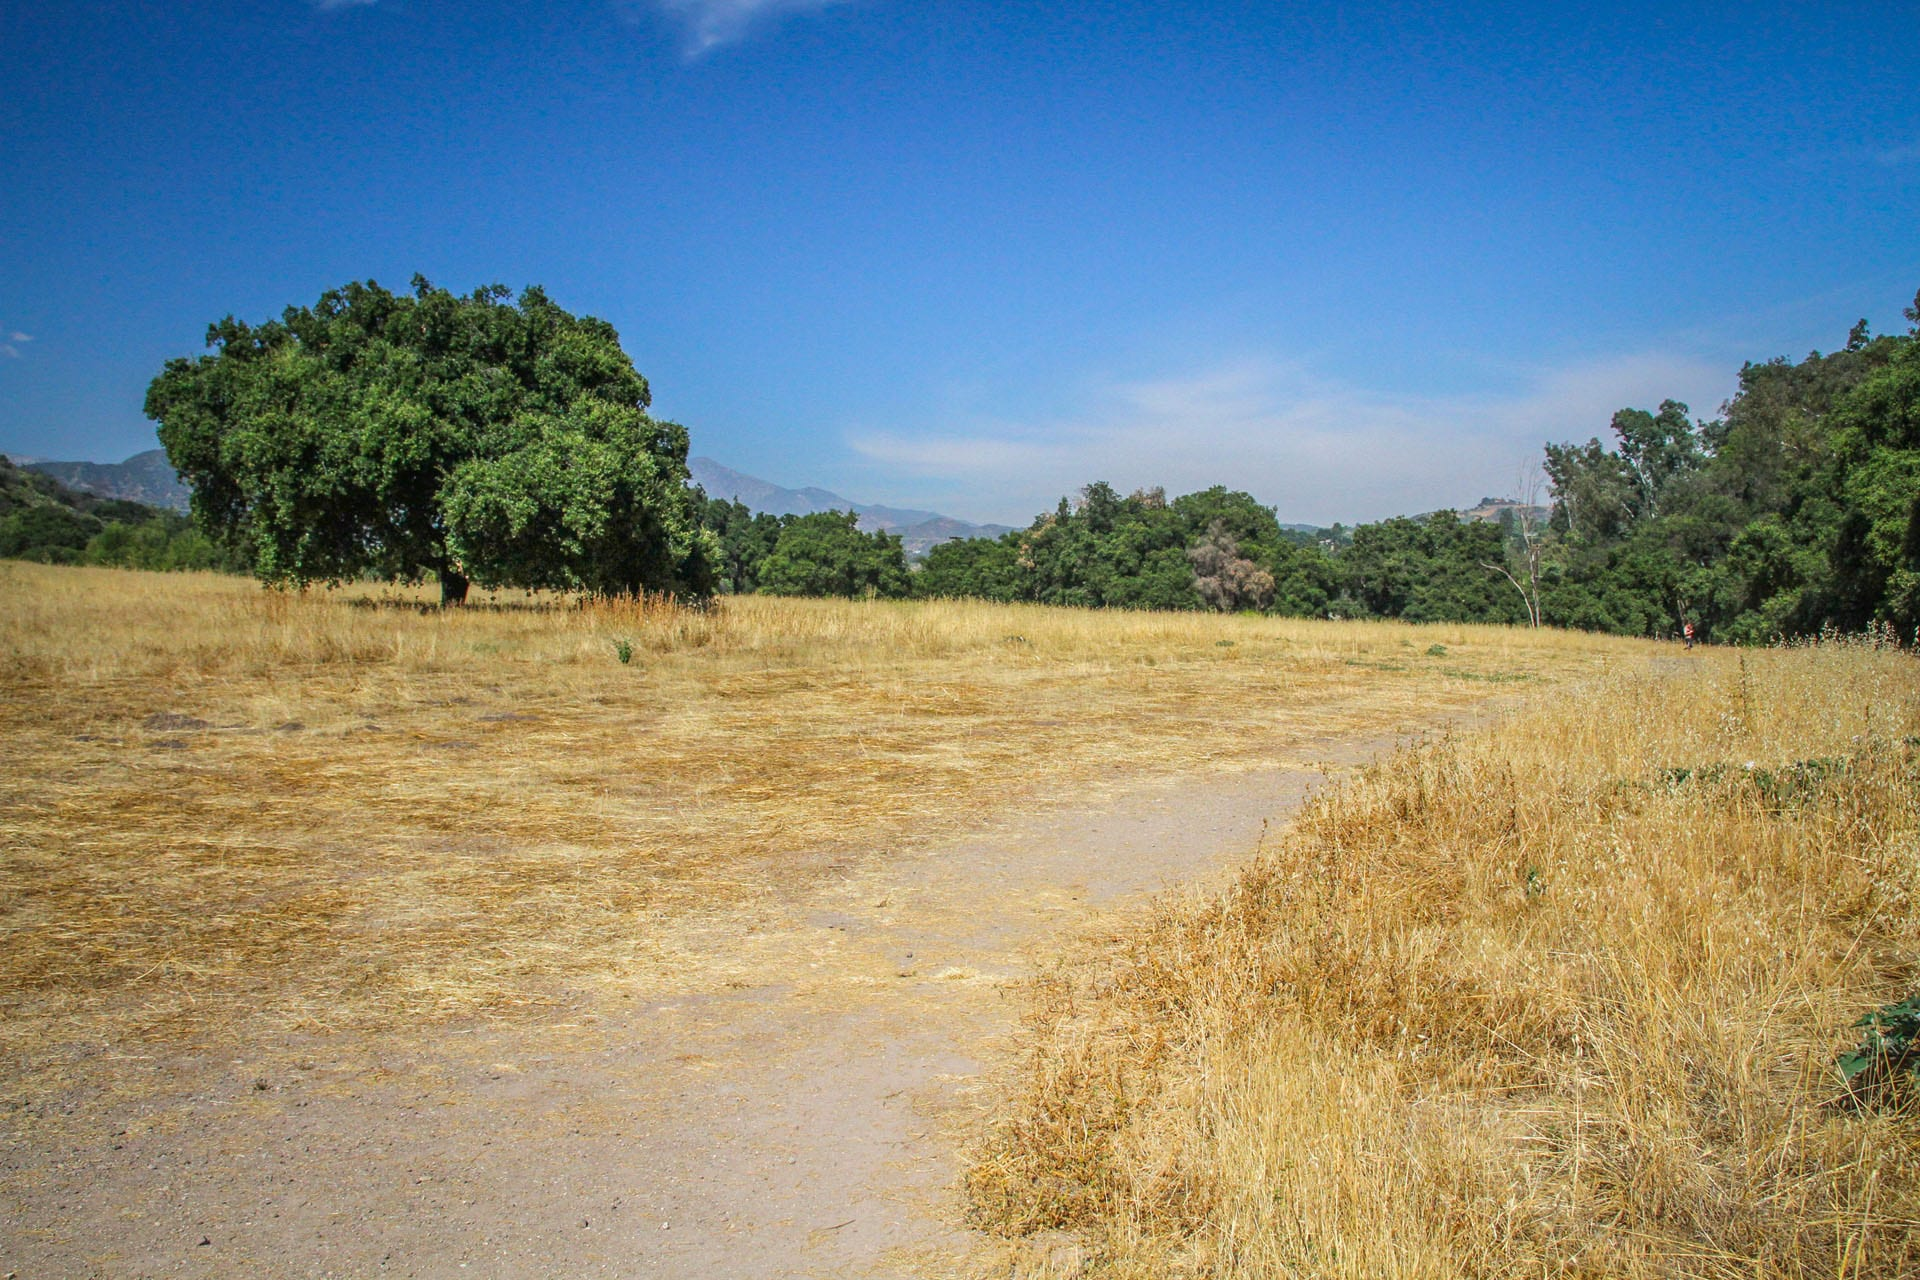 Dirt trail through dry grassy field and trees